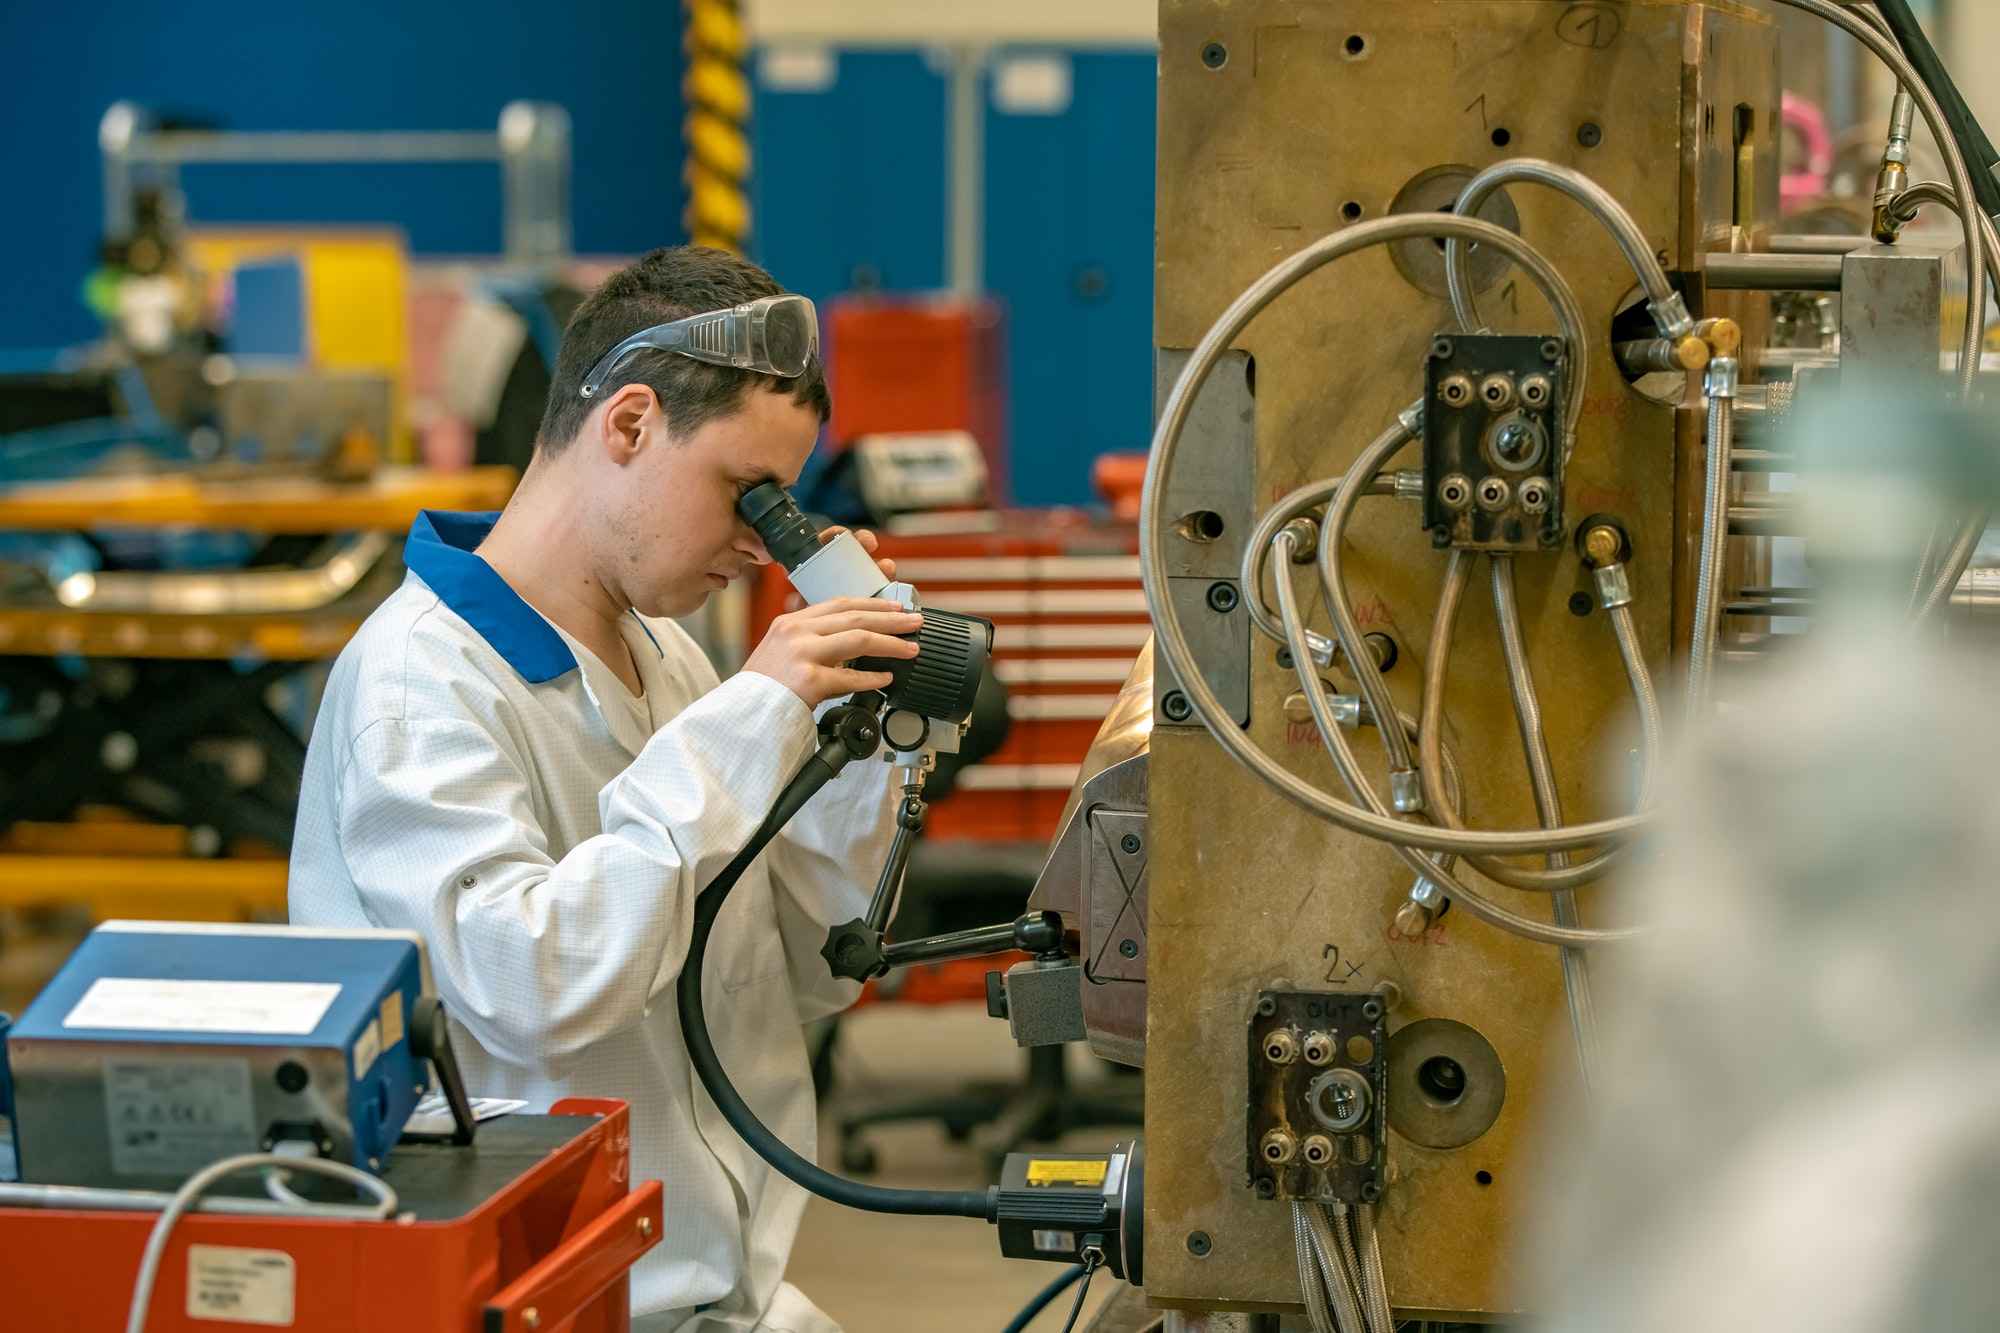 the engineer checks the correct setting of the metal mold for castings in the factory using a